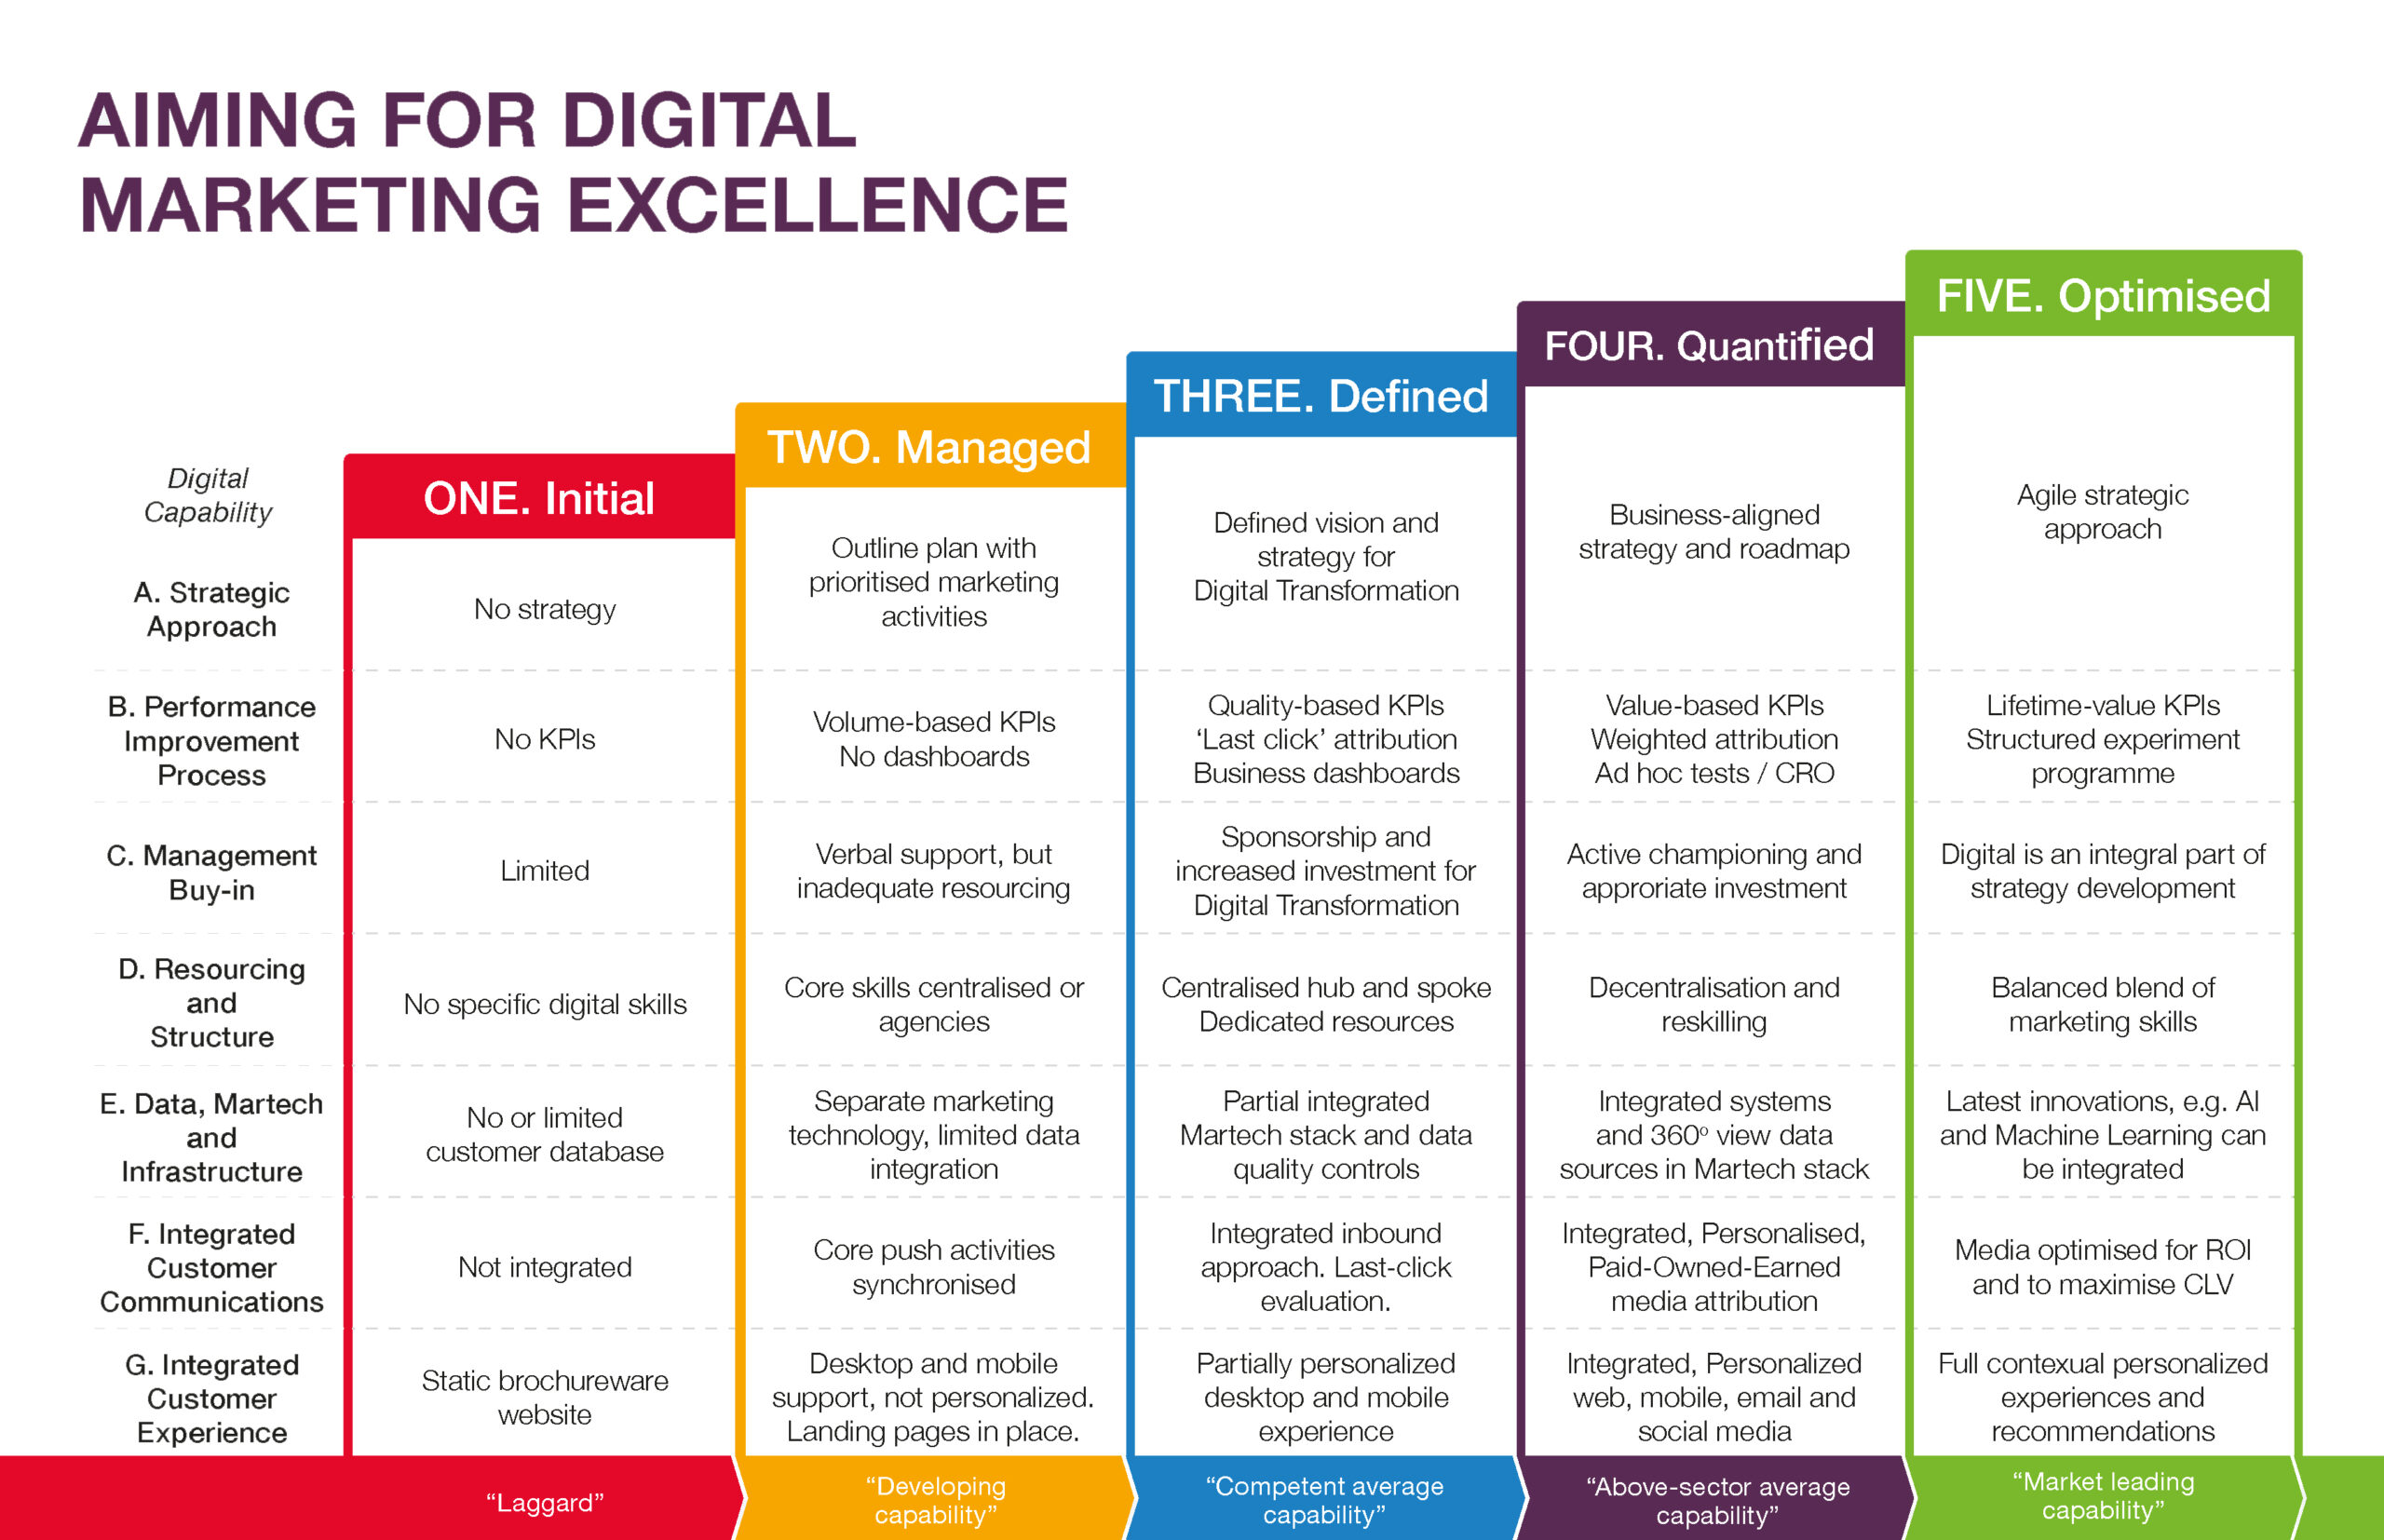 Aiming for digital marketing excellence